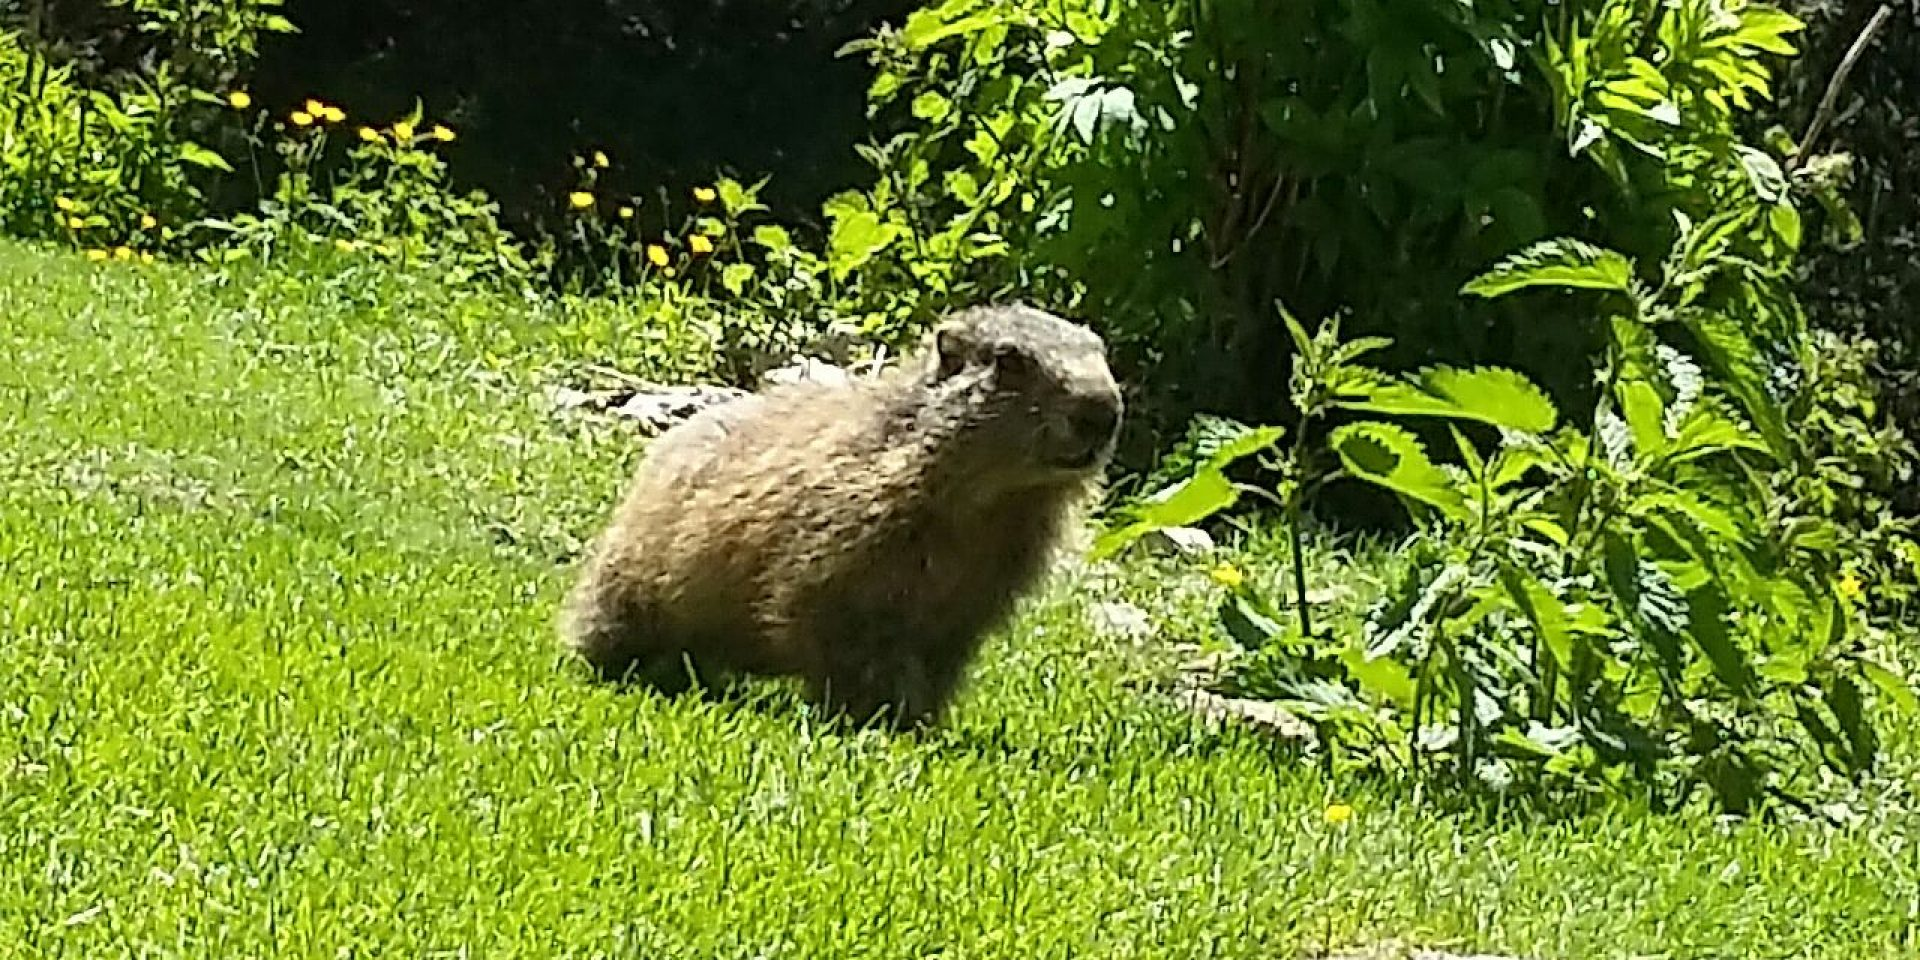 The trail of marmots